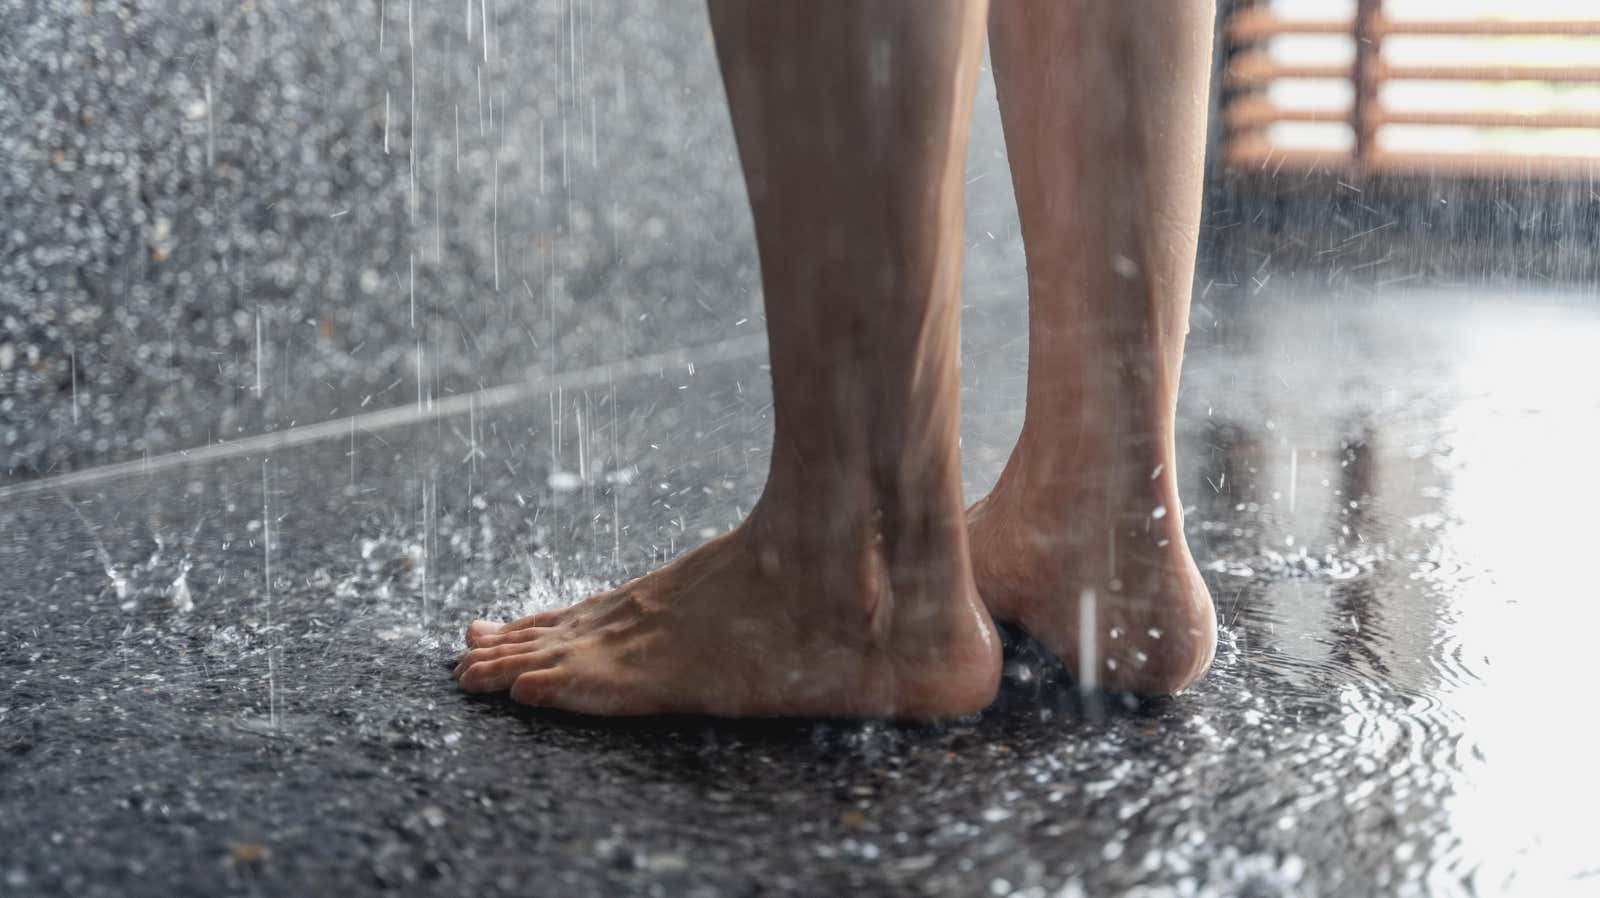 No, Your Feet Don't Clean Themselves in the Shower